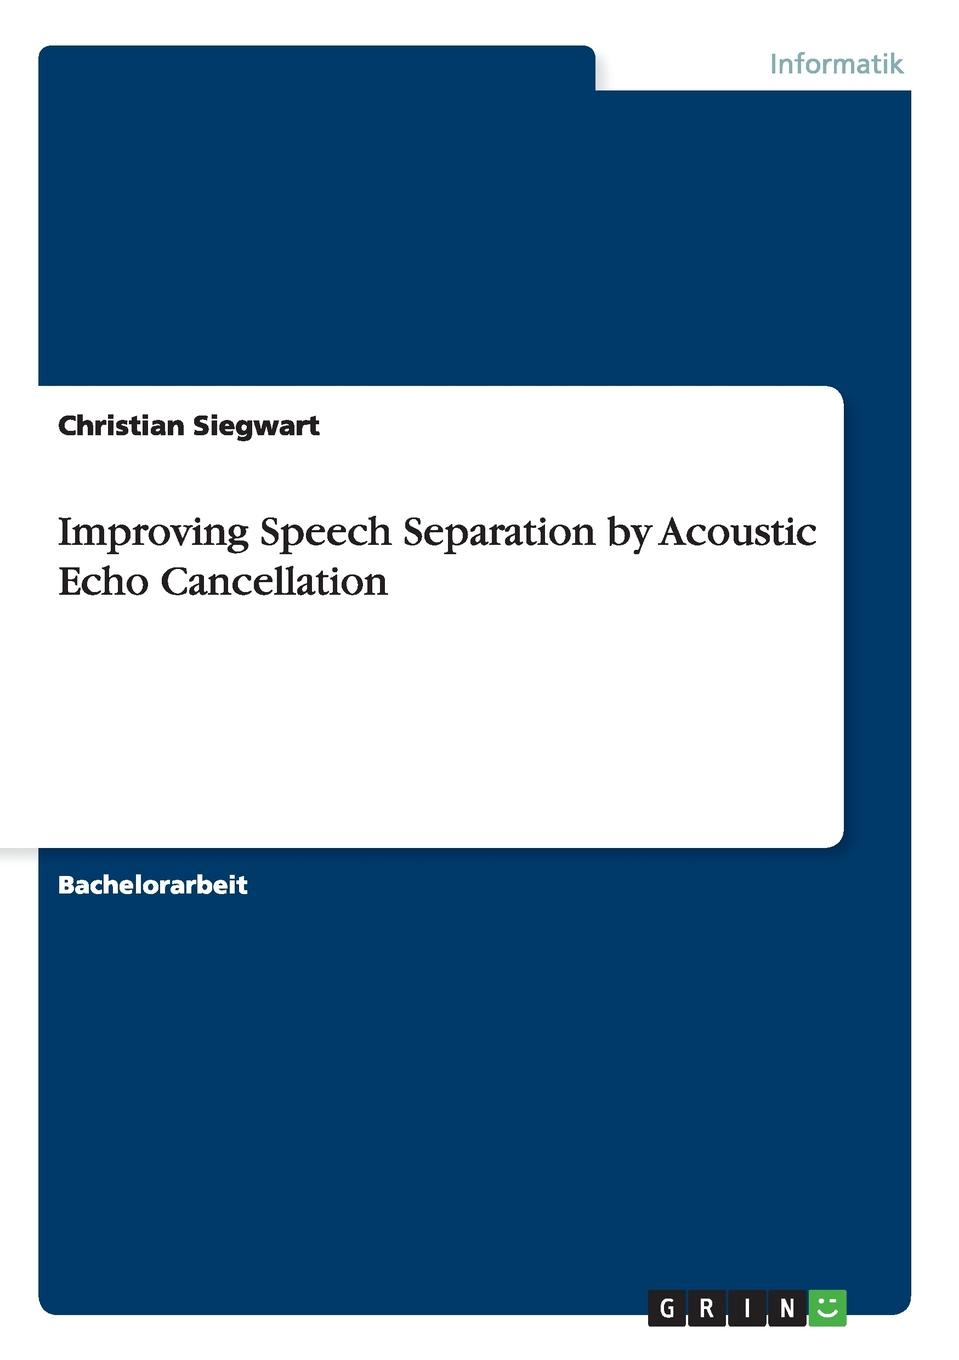 Christian Siegwart Improving Speech Separation by Acoustic Echo Cancellation